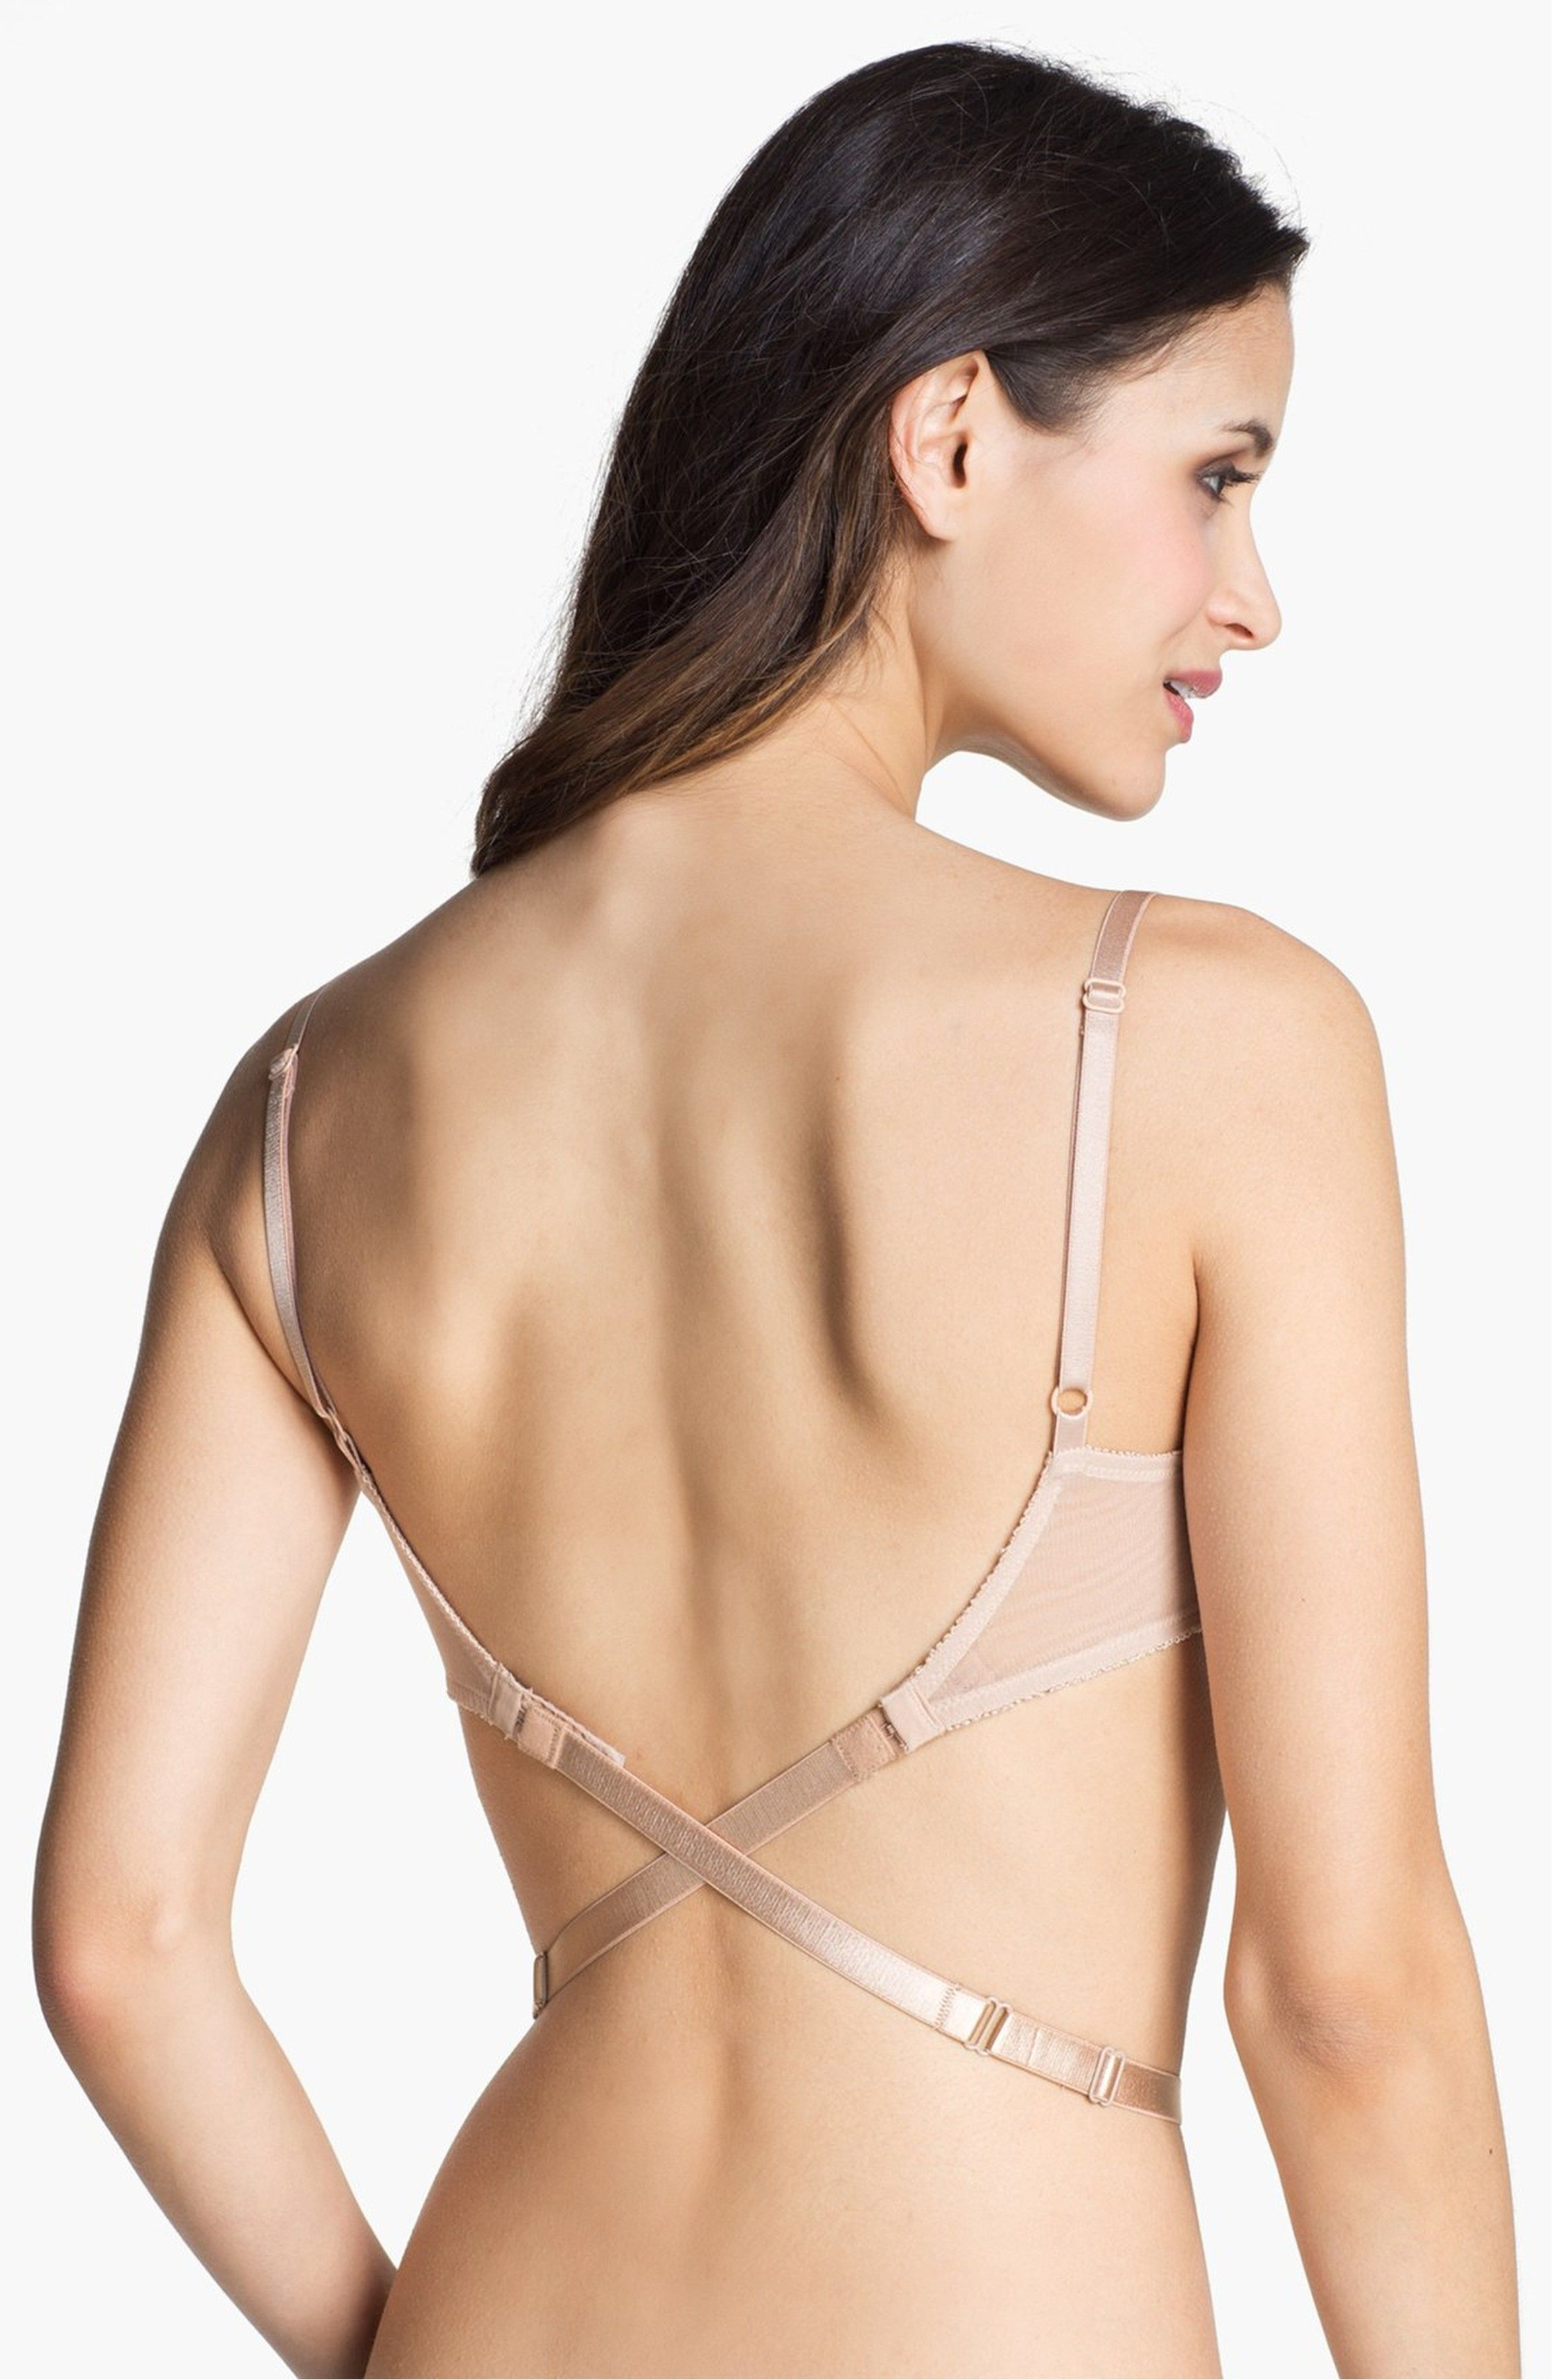 c556826c23f Main Image - Nordstrom Lingerie Low Back Strap 1-Hook Bra Attachment ...